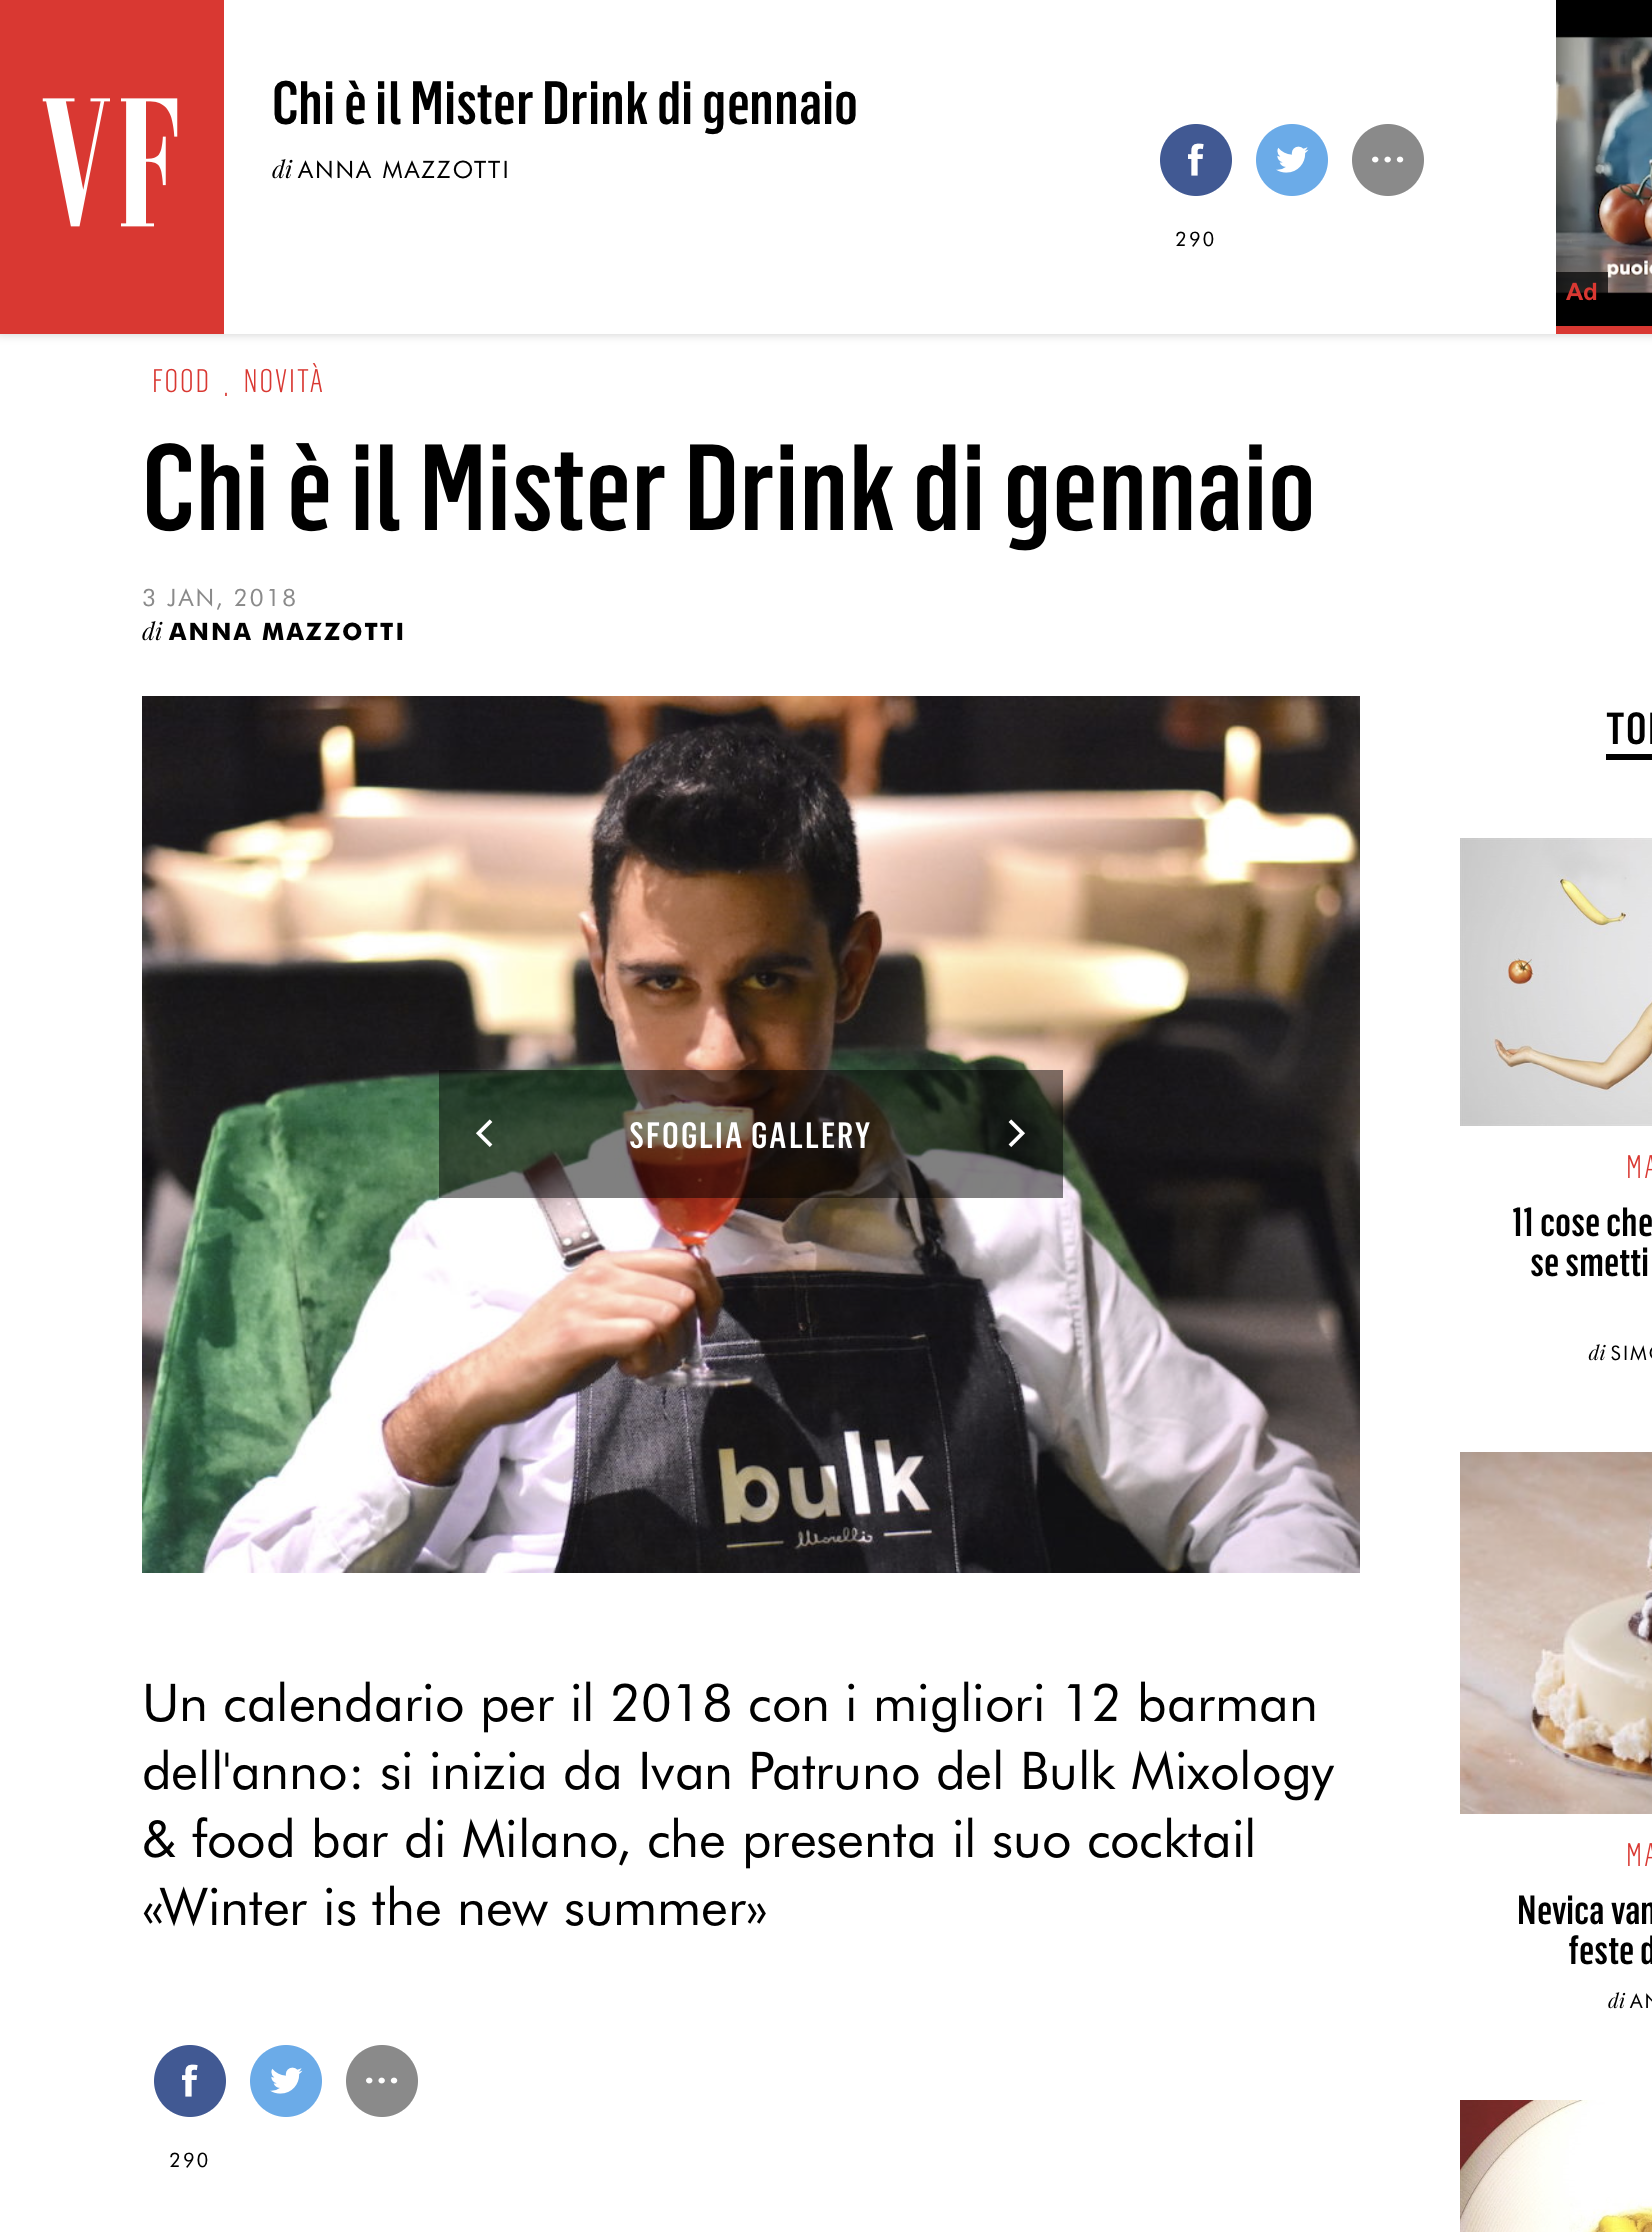 Mister drink di gennaio bulk mixology food bar